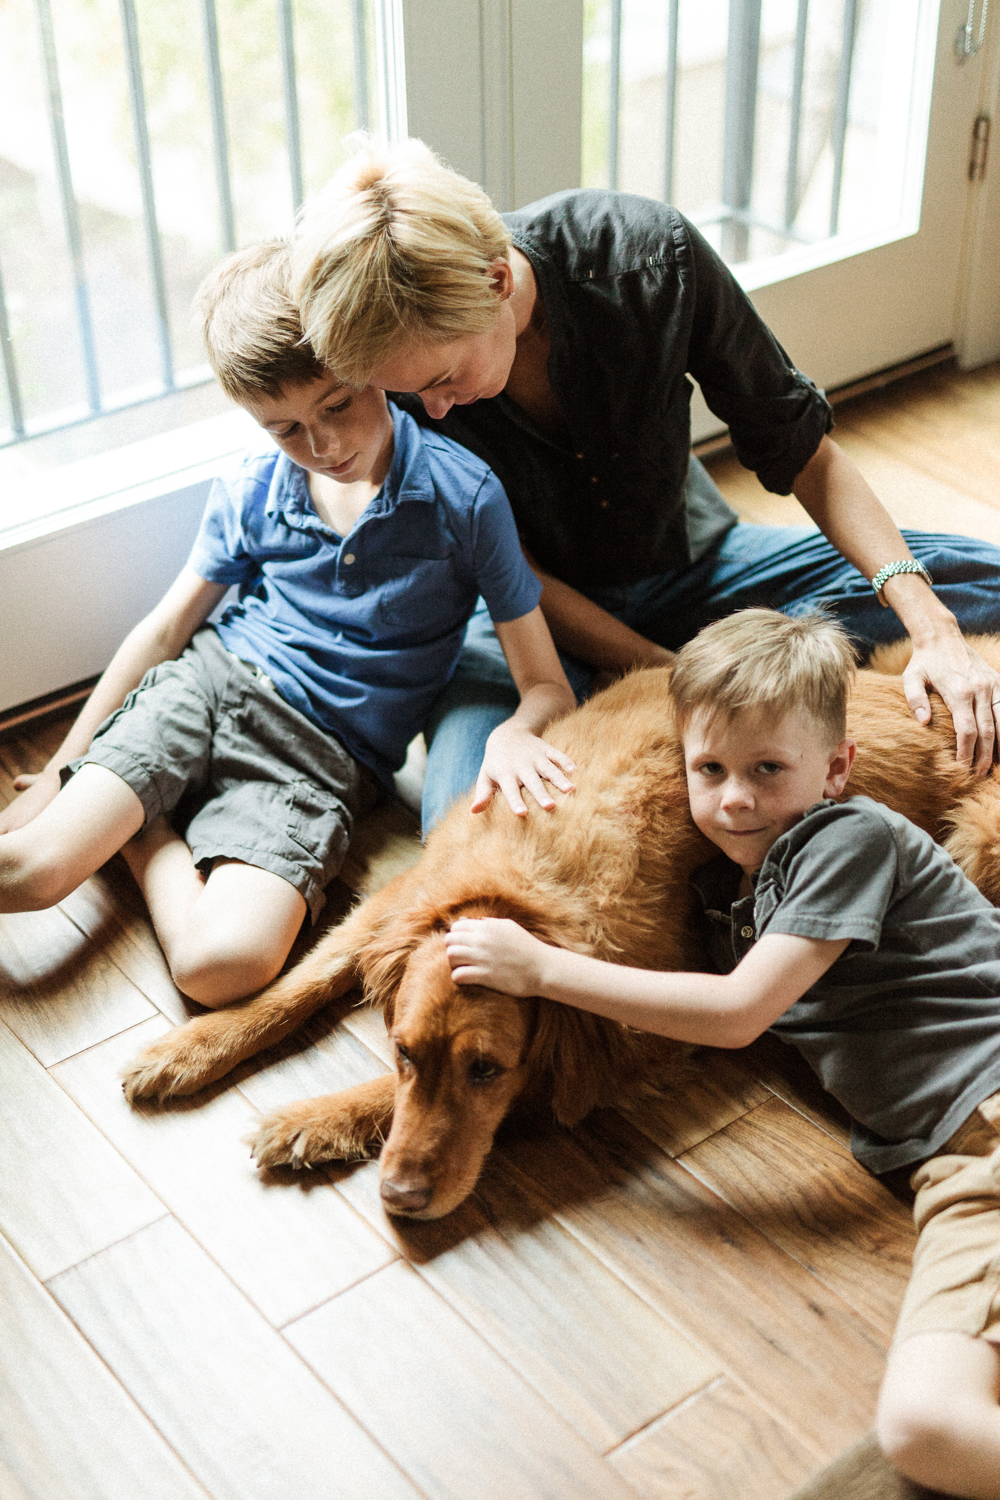 photograph-of-family-and-old-dog-in-home-photographer-salt-lake-city-utah